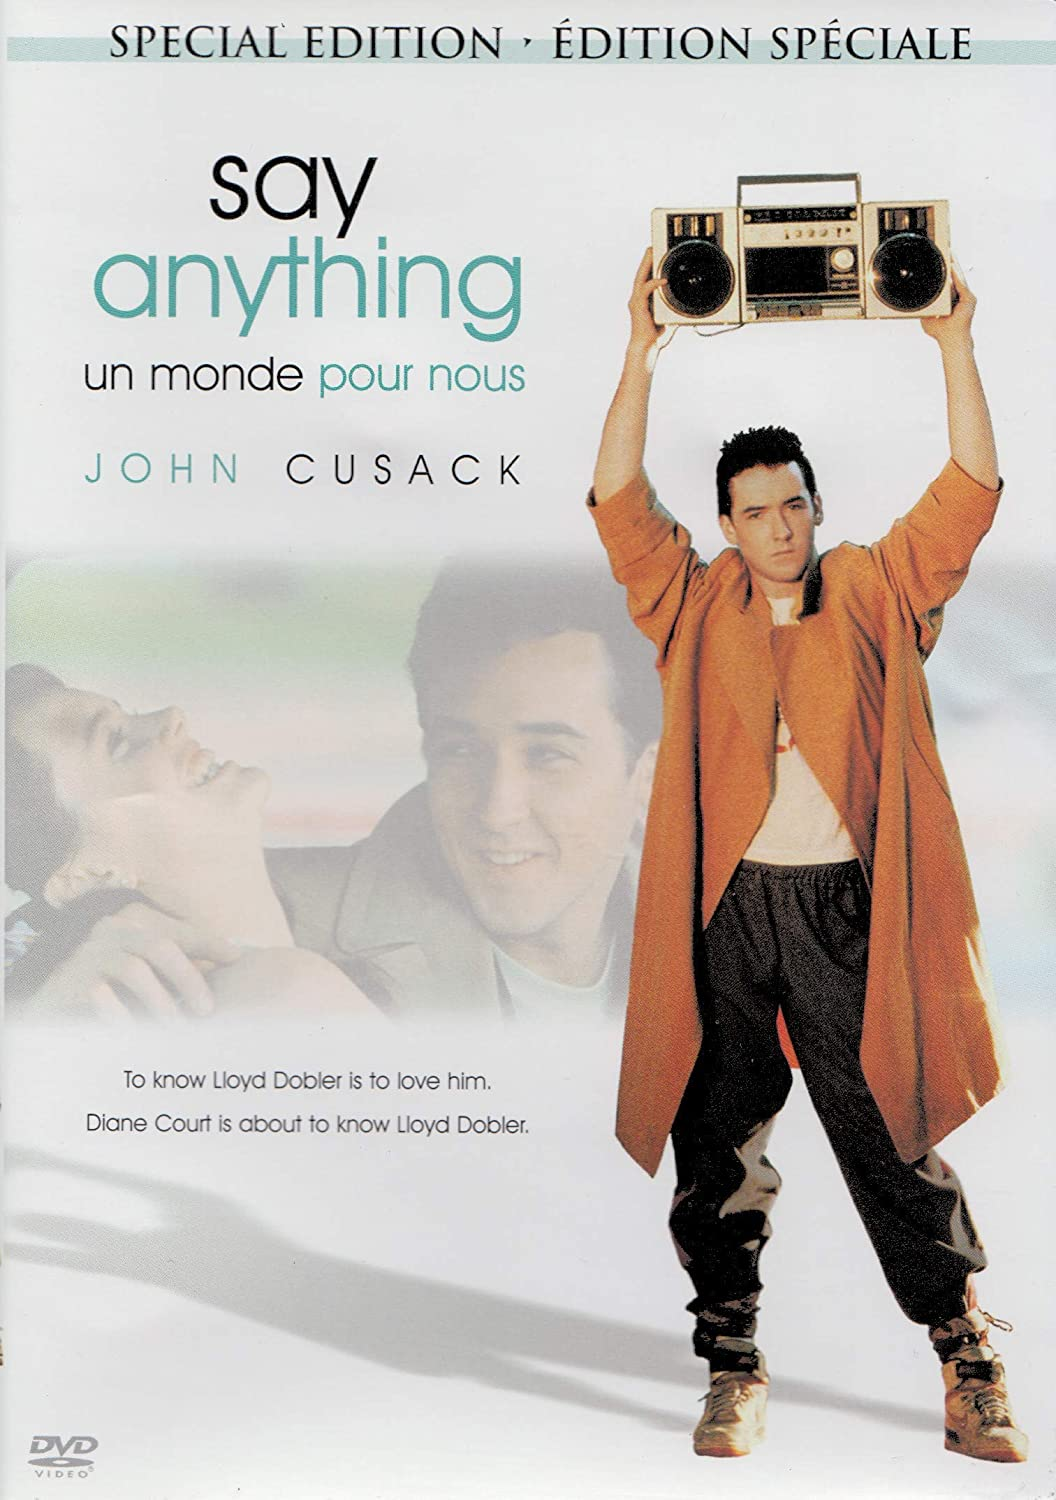 Amazon.com: Say Anything (Special Edition): John Cusack: Movies & TV